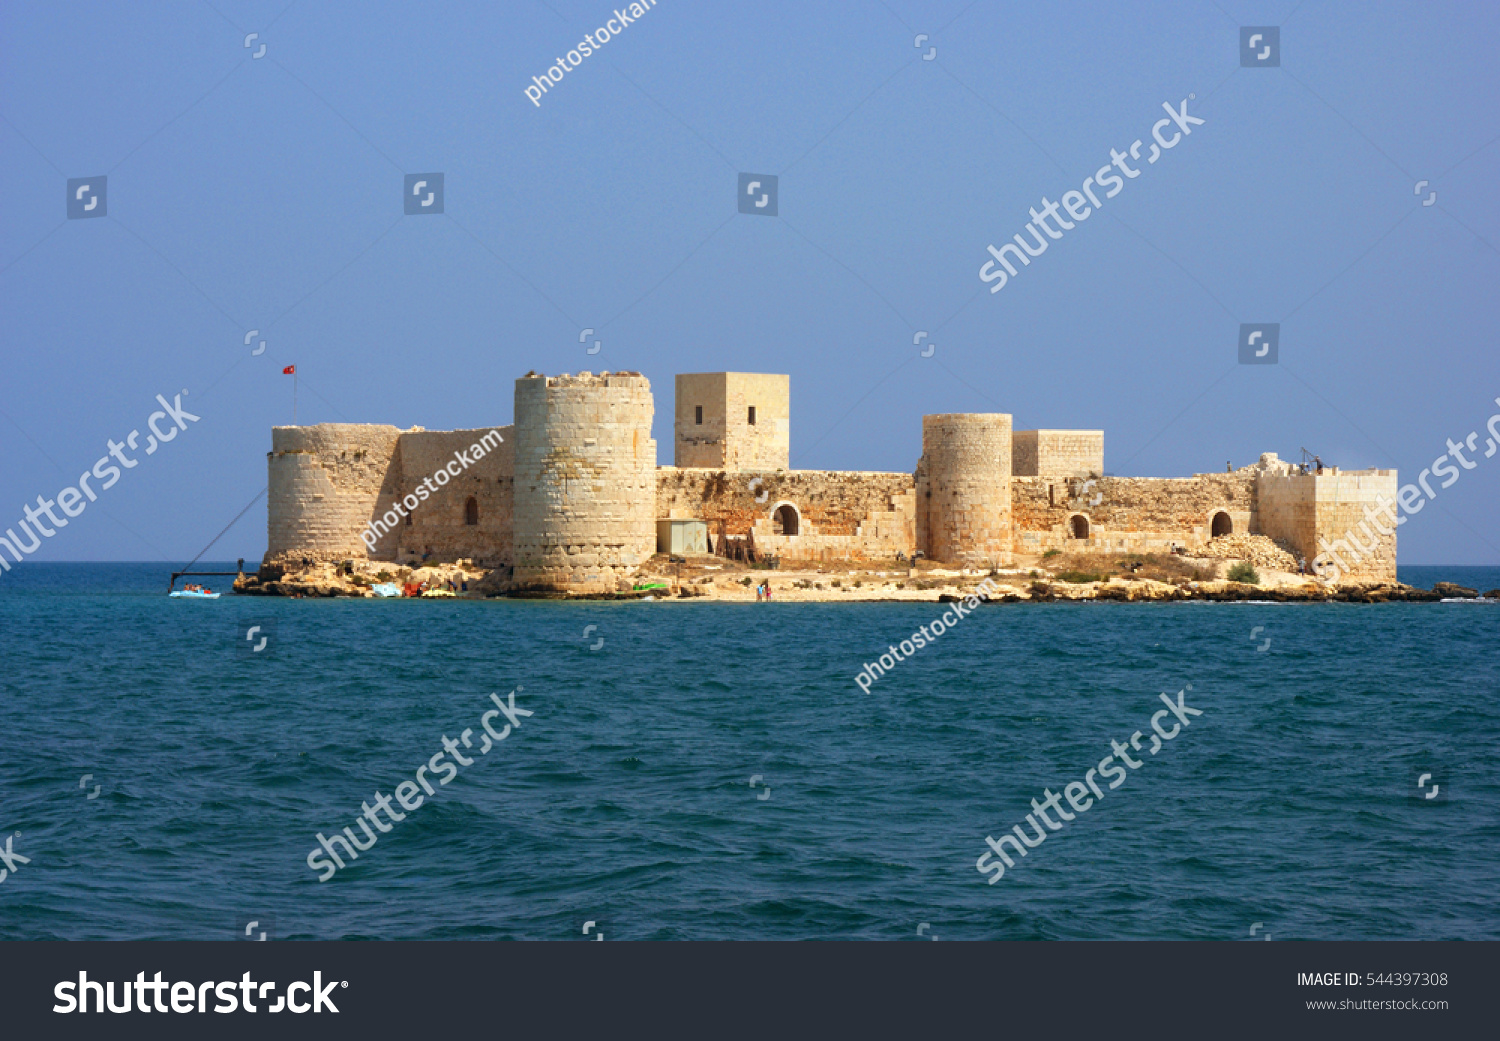 Corycus Or Corycus Or Corycos Historical Crusaders Castle ...